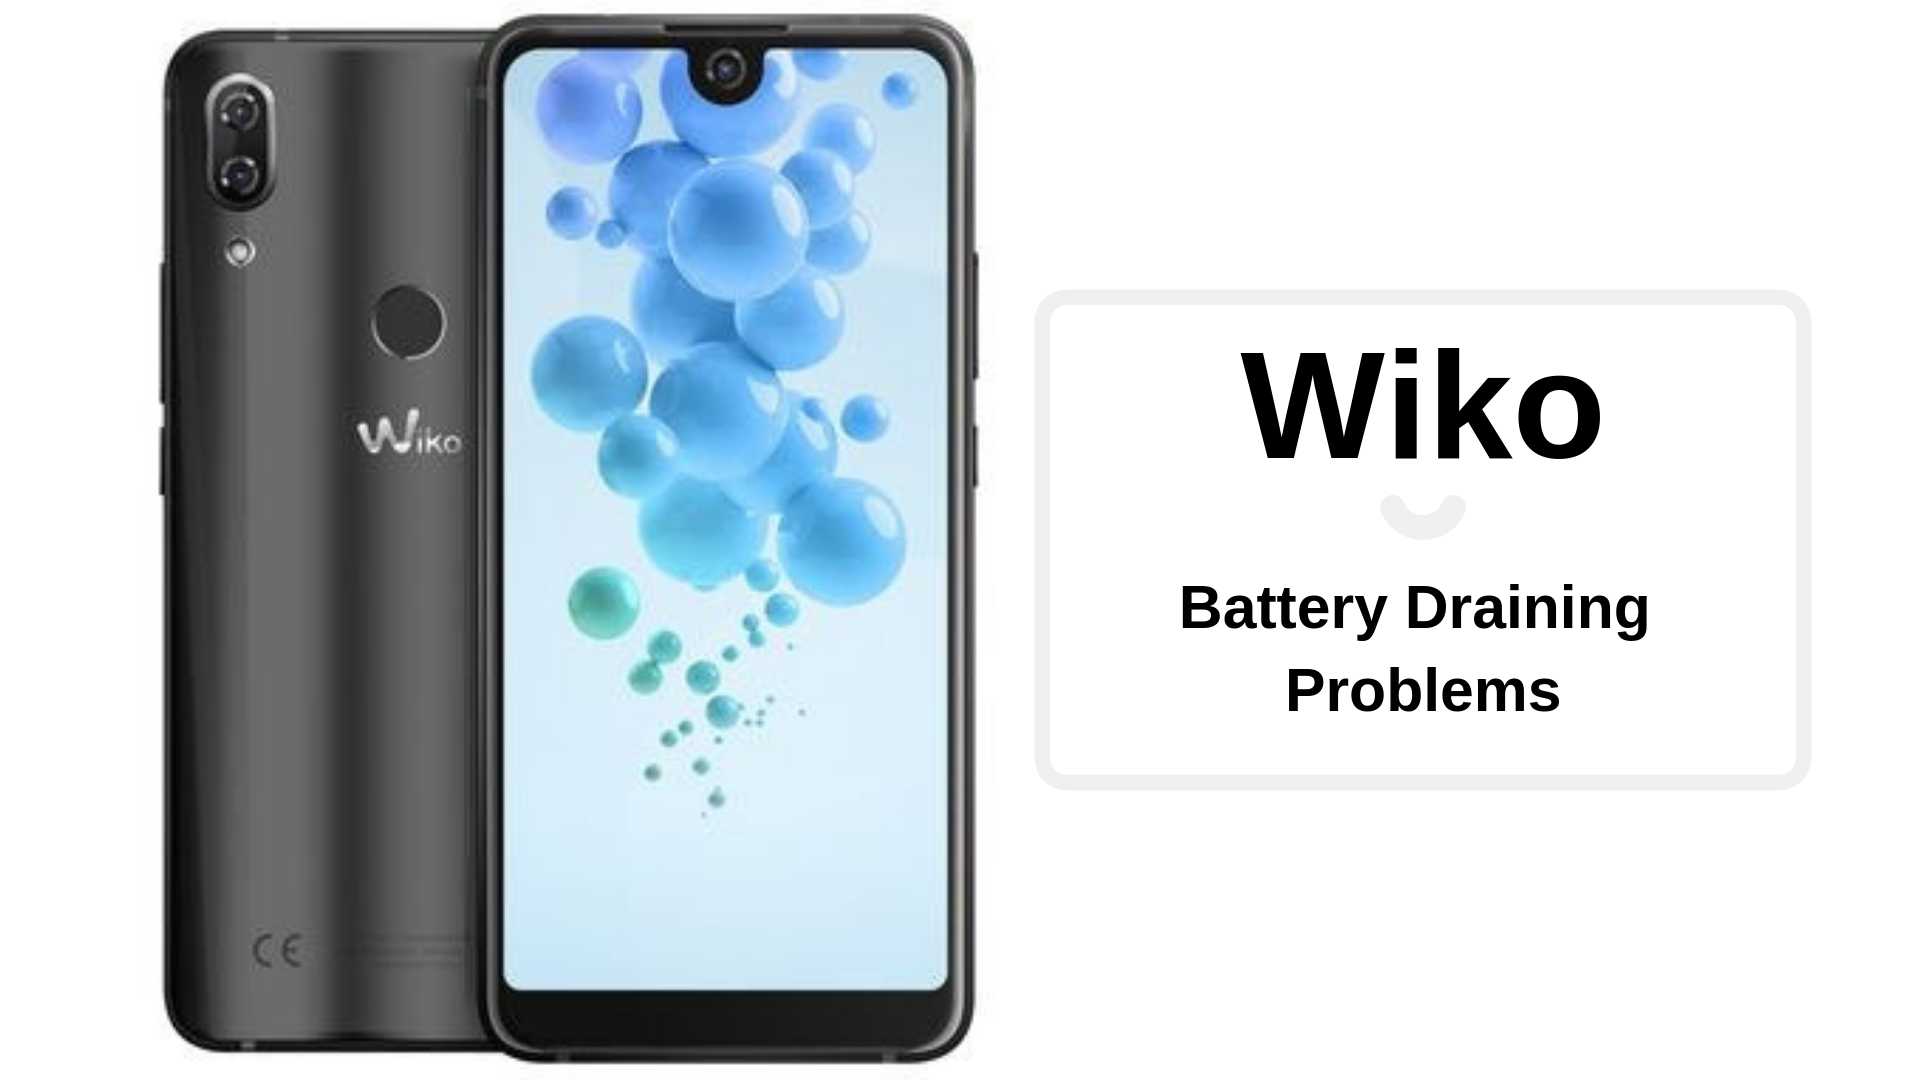 How Fix Wiko Battery Draining Problems - Troubleshooting and Fixes